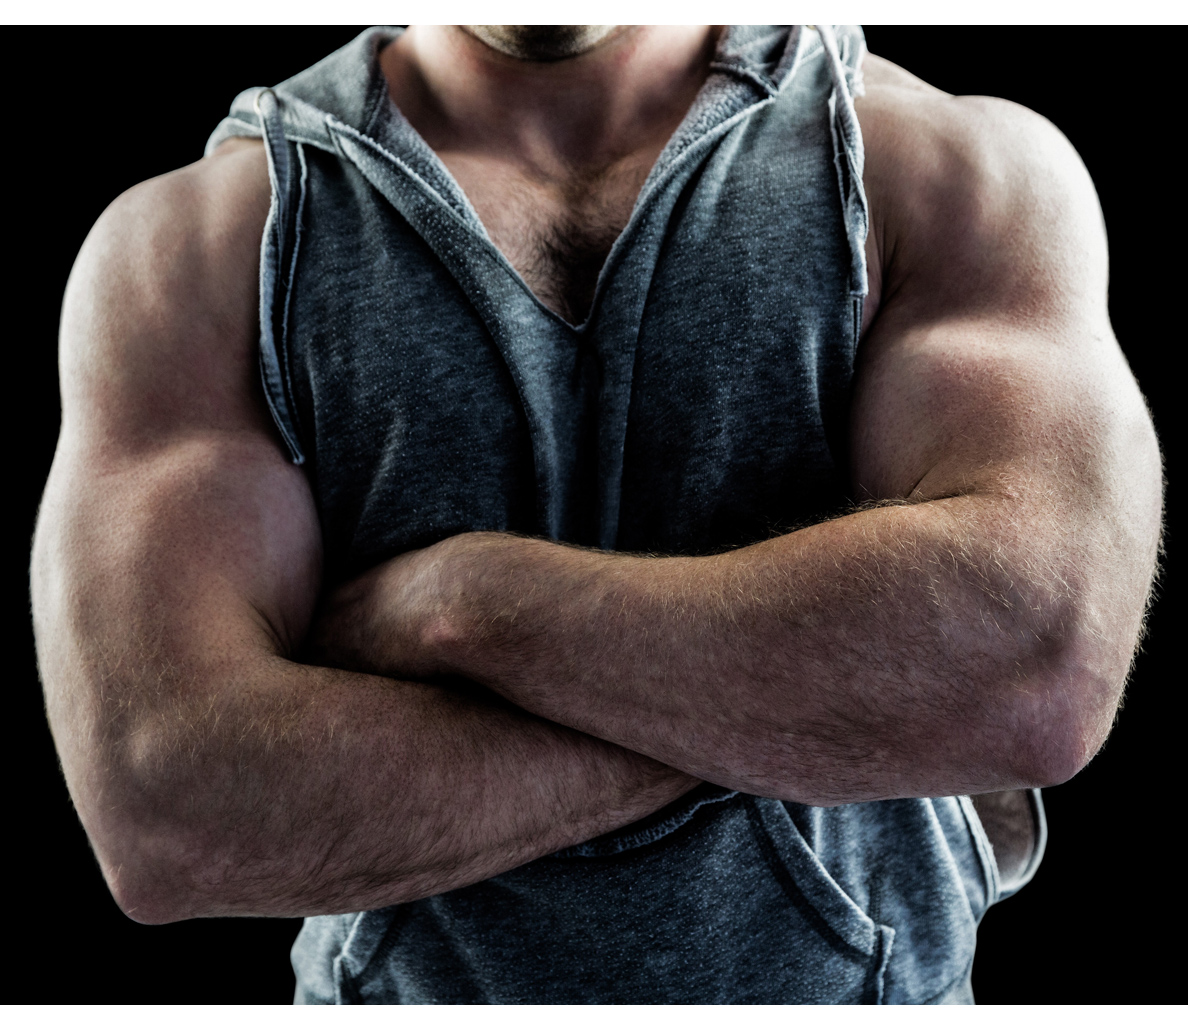 10 Exercises That Work Your Arms To Exhaustion